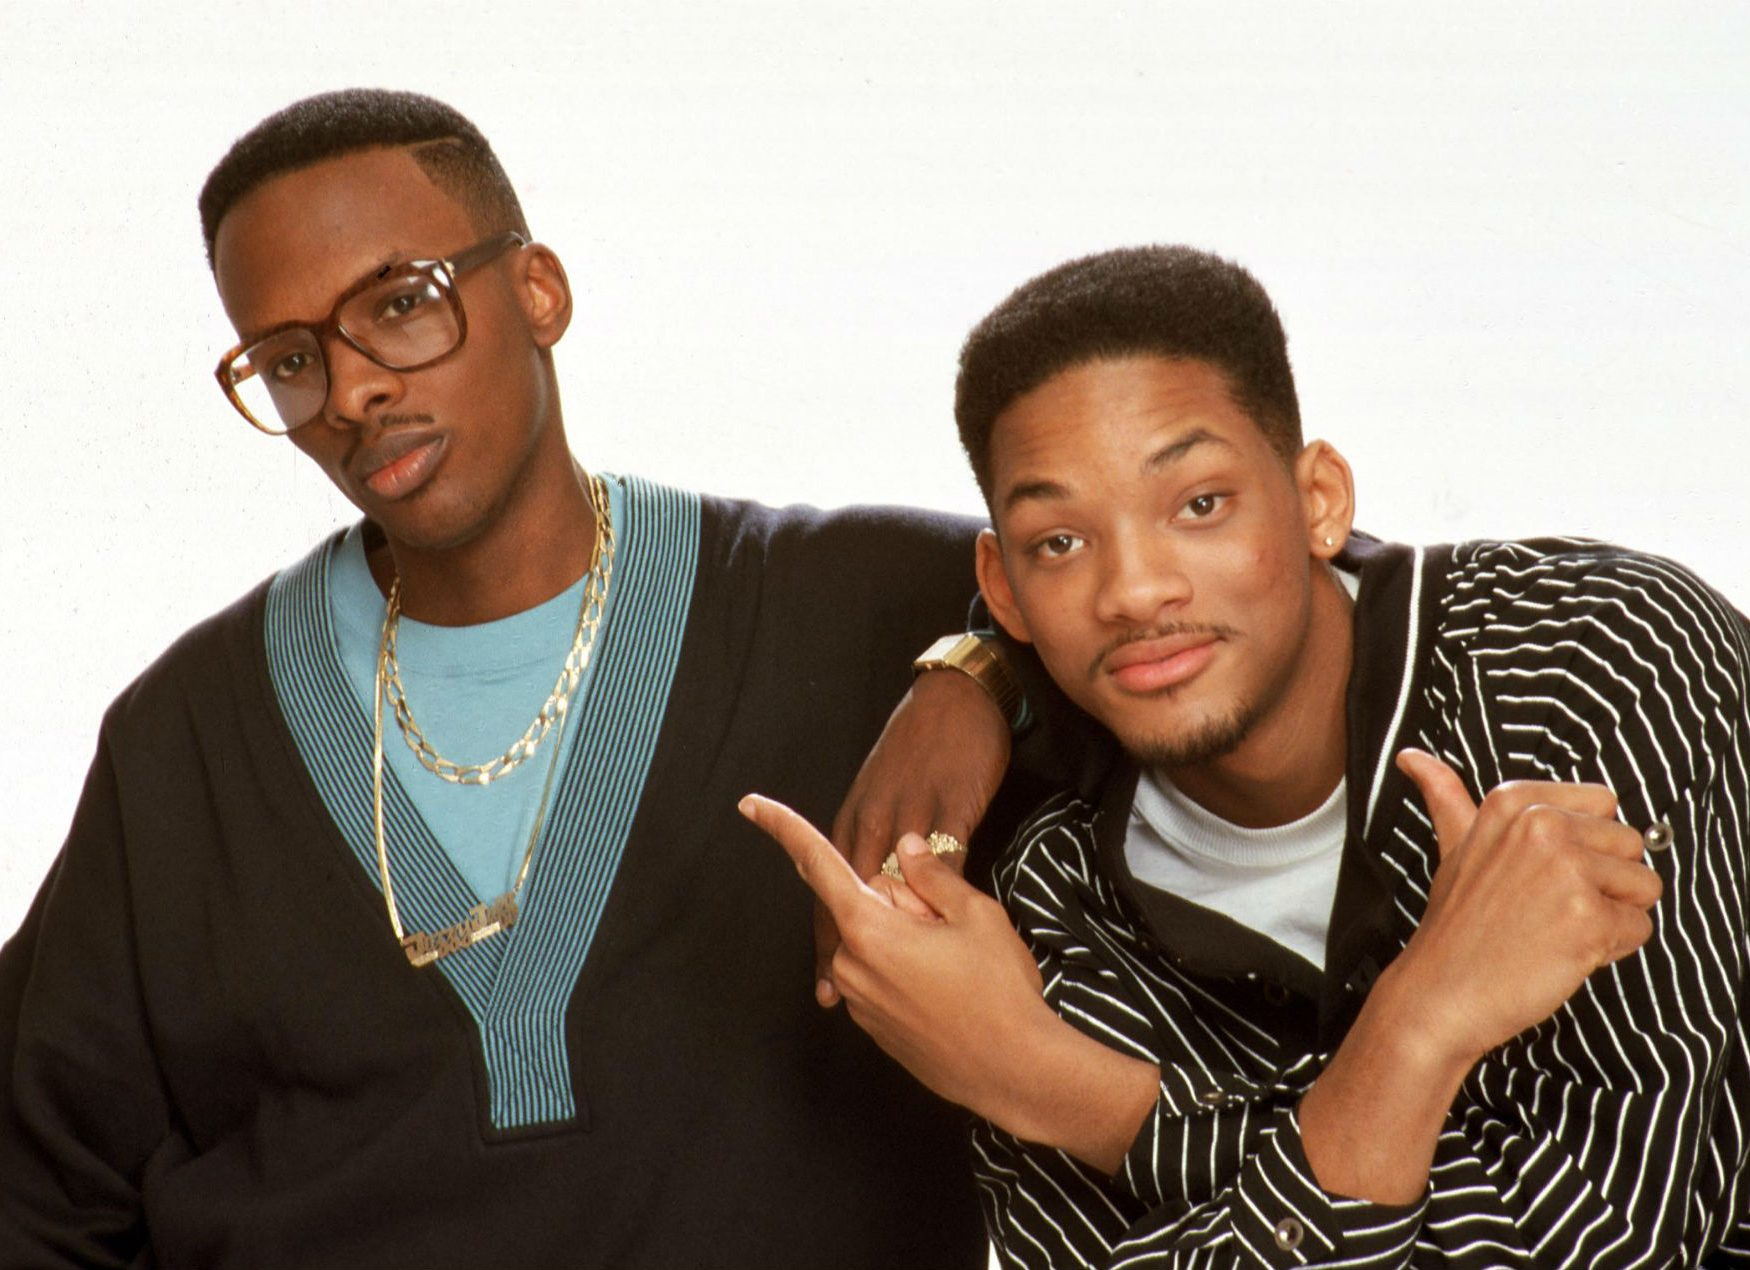 fresh prince jazzy jeff video missing 30 years e1603278343956 20 Things You May Not Have Realised About The Fresh Prince Of Bel-Air